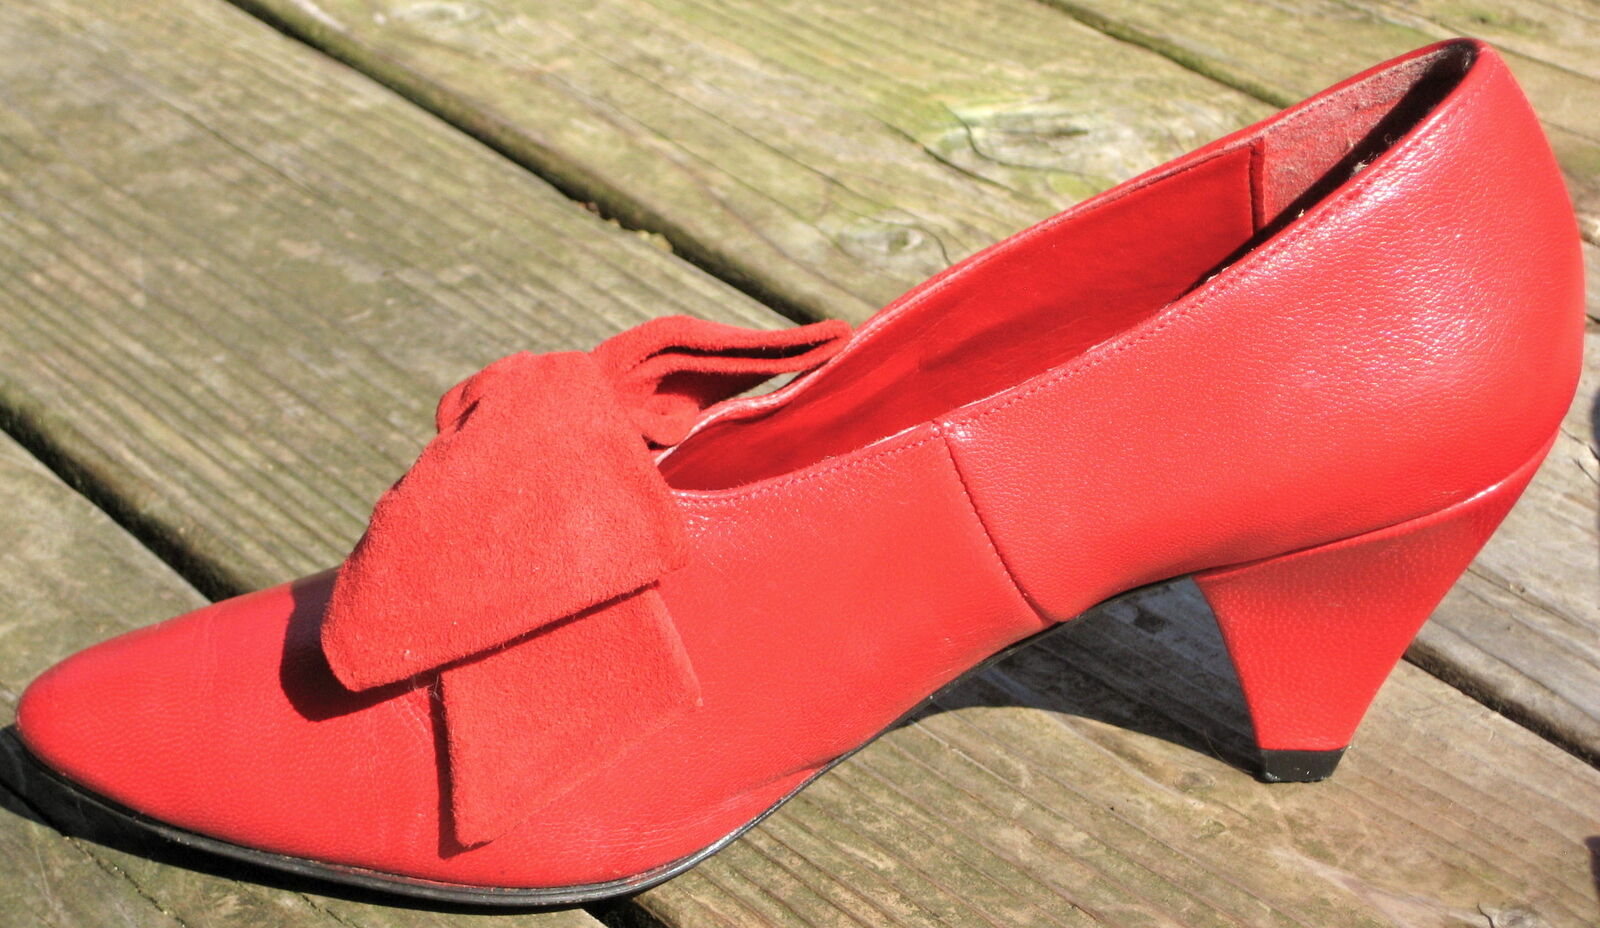 VTG LEATHER 80s LADIES CARVELA ROT LEATHER VTG SUEDE Schuhe PUMPS POINTED TOES UK 4.5 37 6.5 d2802c